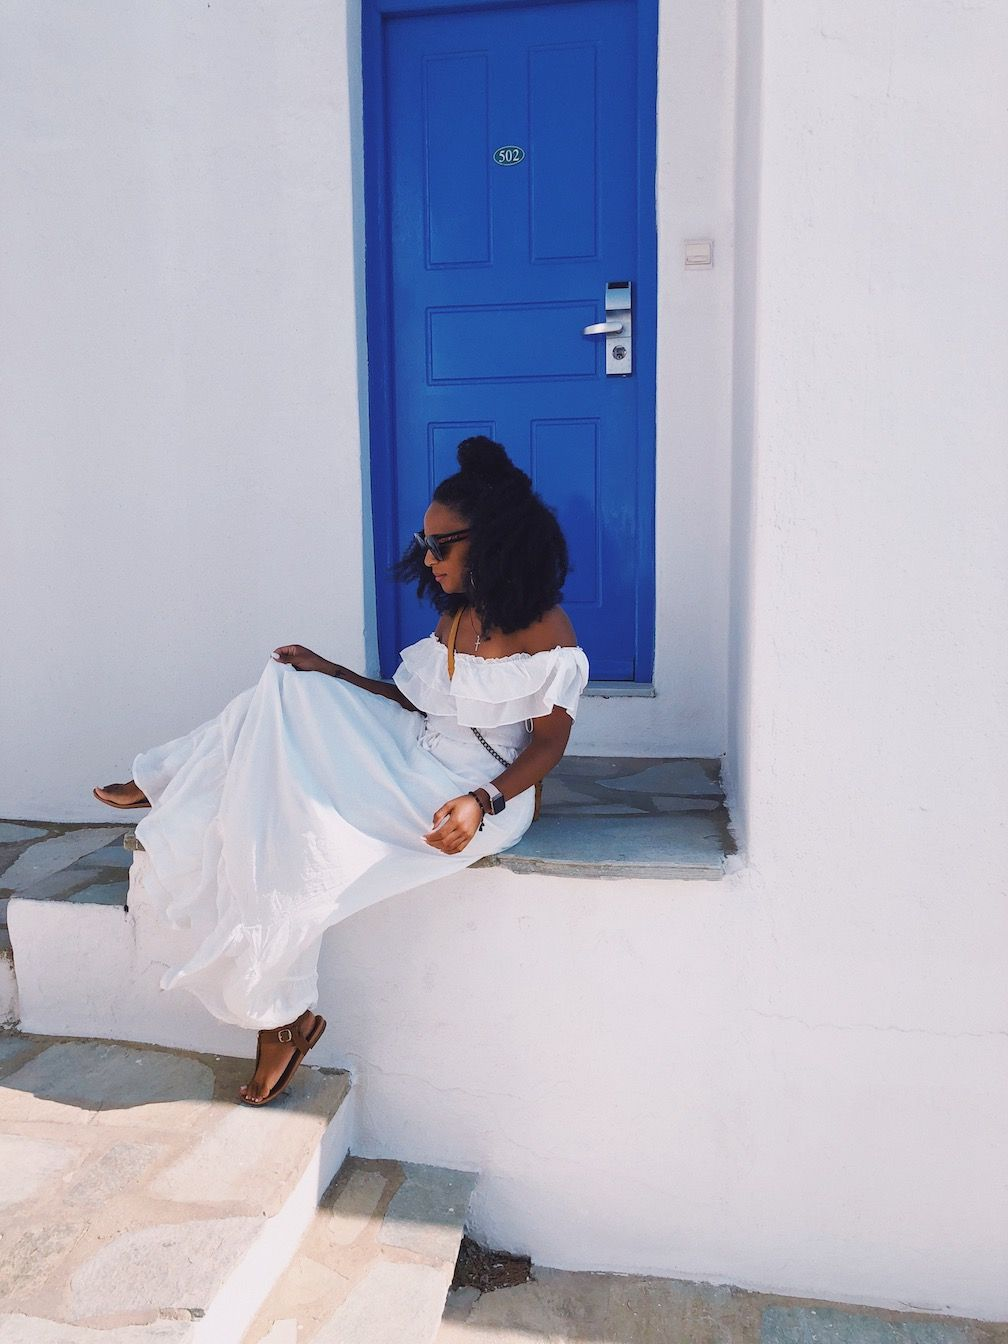 The Black Lady's Travel Guide For Visiting Greece #visitgreece